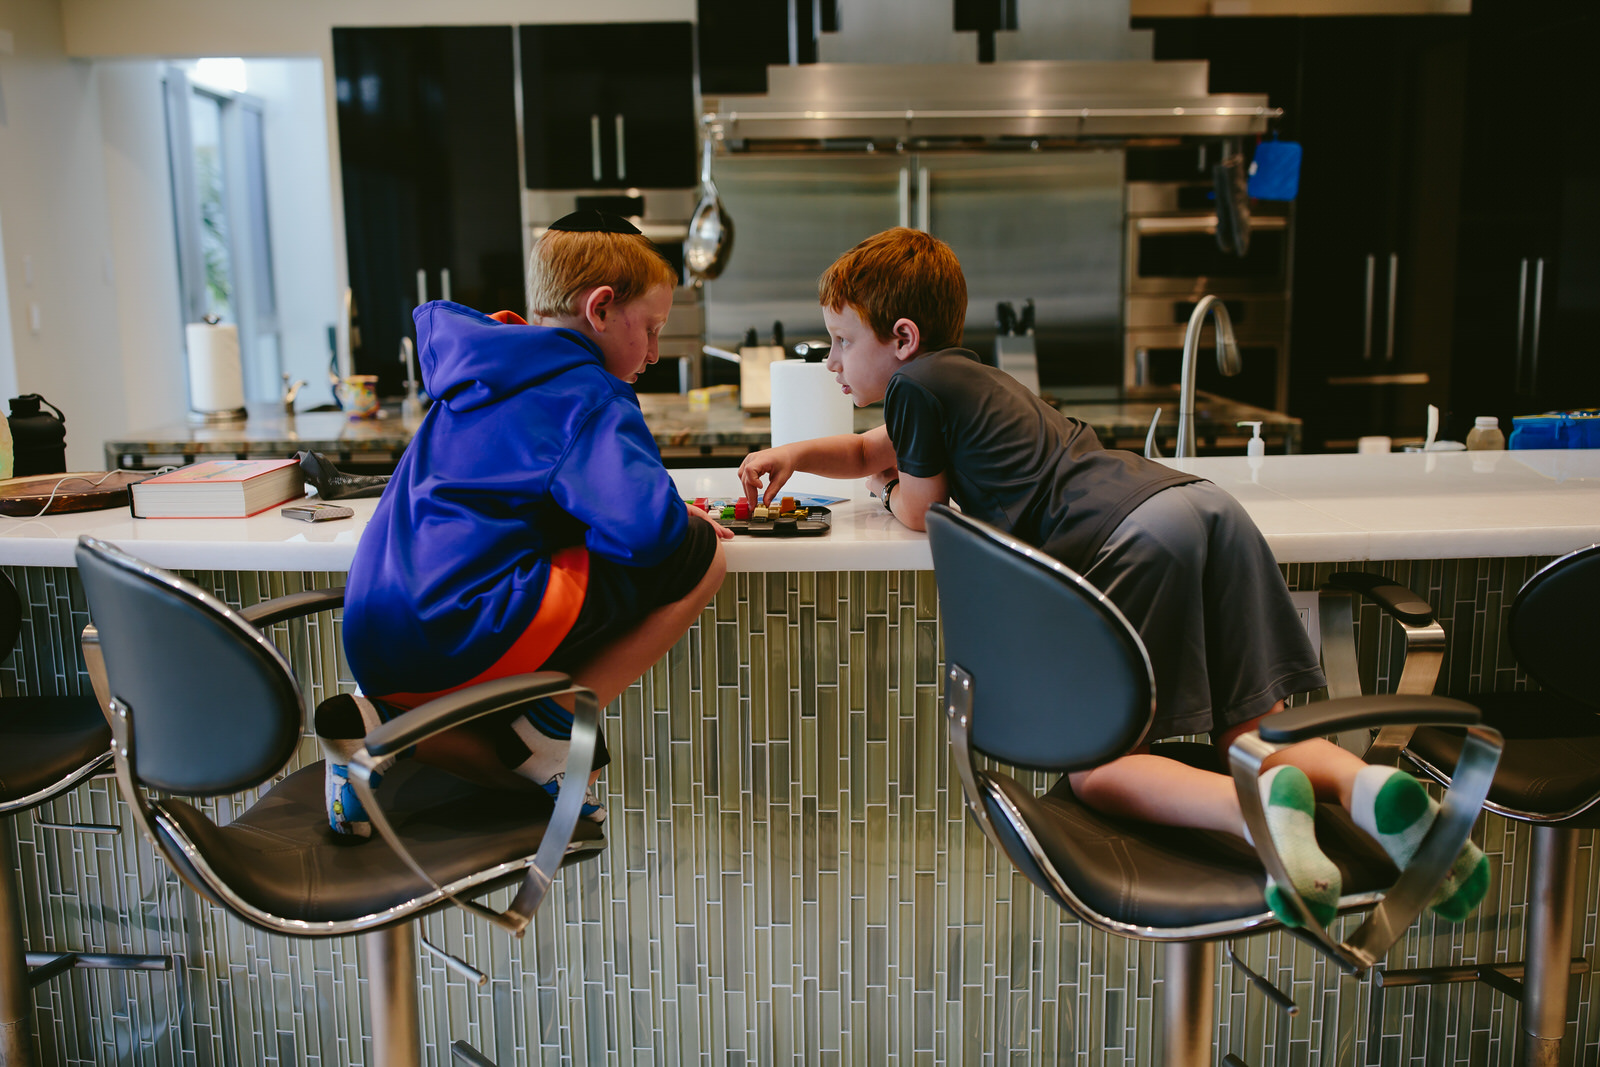 brothers_playing_games_tiny_house_hpoto_colorado_photographer.jpg